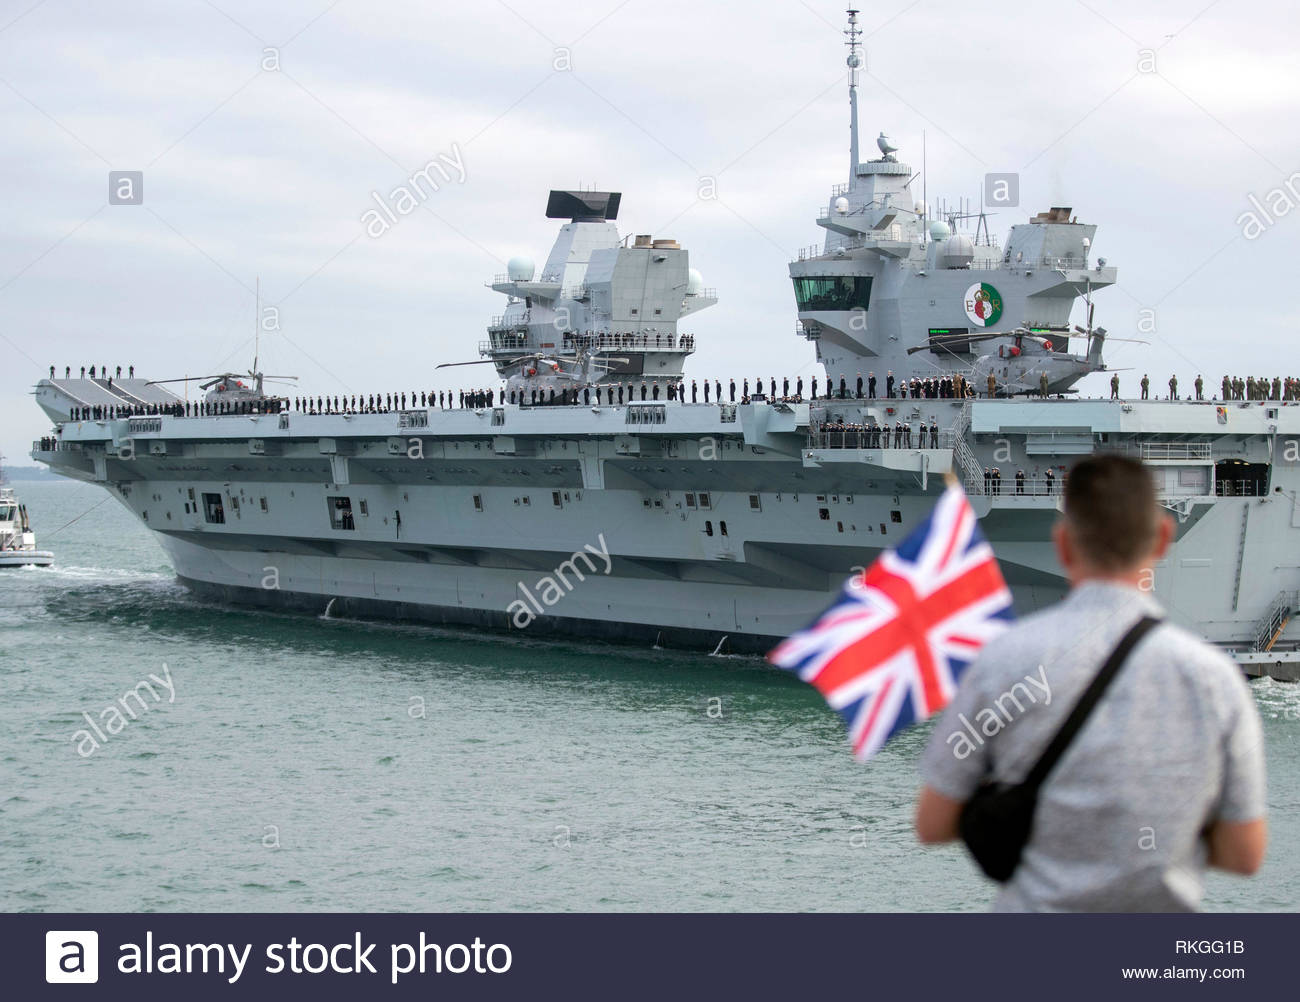 File photo dated 18/3/2018 of HMS Queen Elizabeth leaving Portsmouth Harbour. In a speech at the Royal United Services Institute, Defence Secretary Gavin Williamson said that the carrier, embarked with UK and US F-35 jets, will be deployed on her first operational mission to the Mediterranean, the Middle East and the Pacific region - where Beijing has been involved in a dispute over navigation rights and territorial claims in the South China Sea. - Stock Image